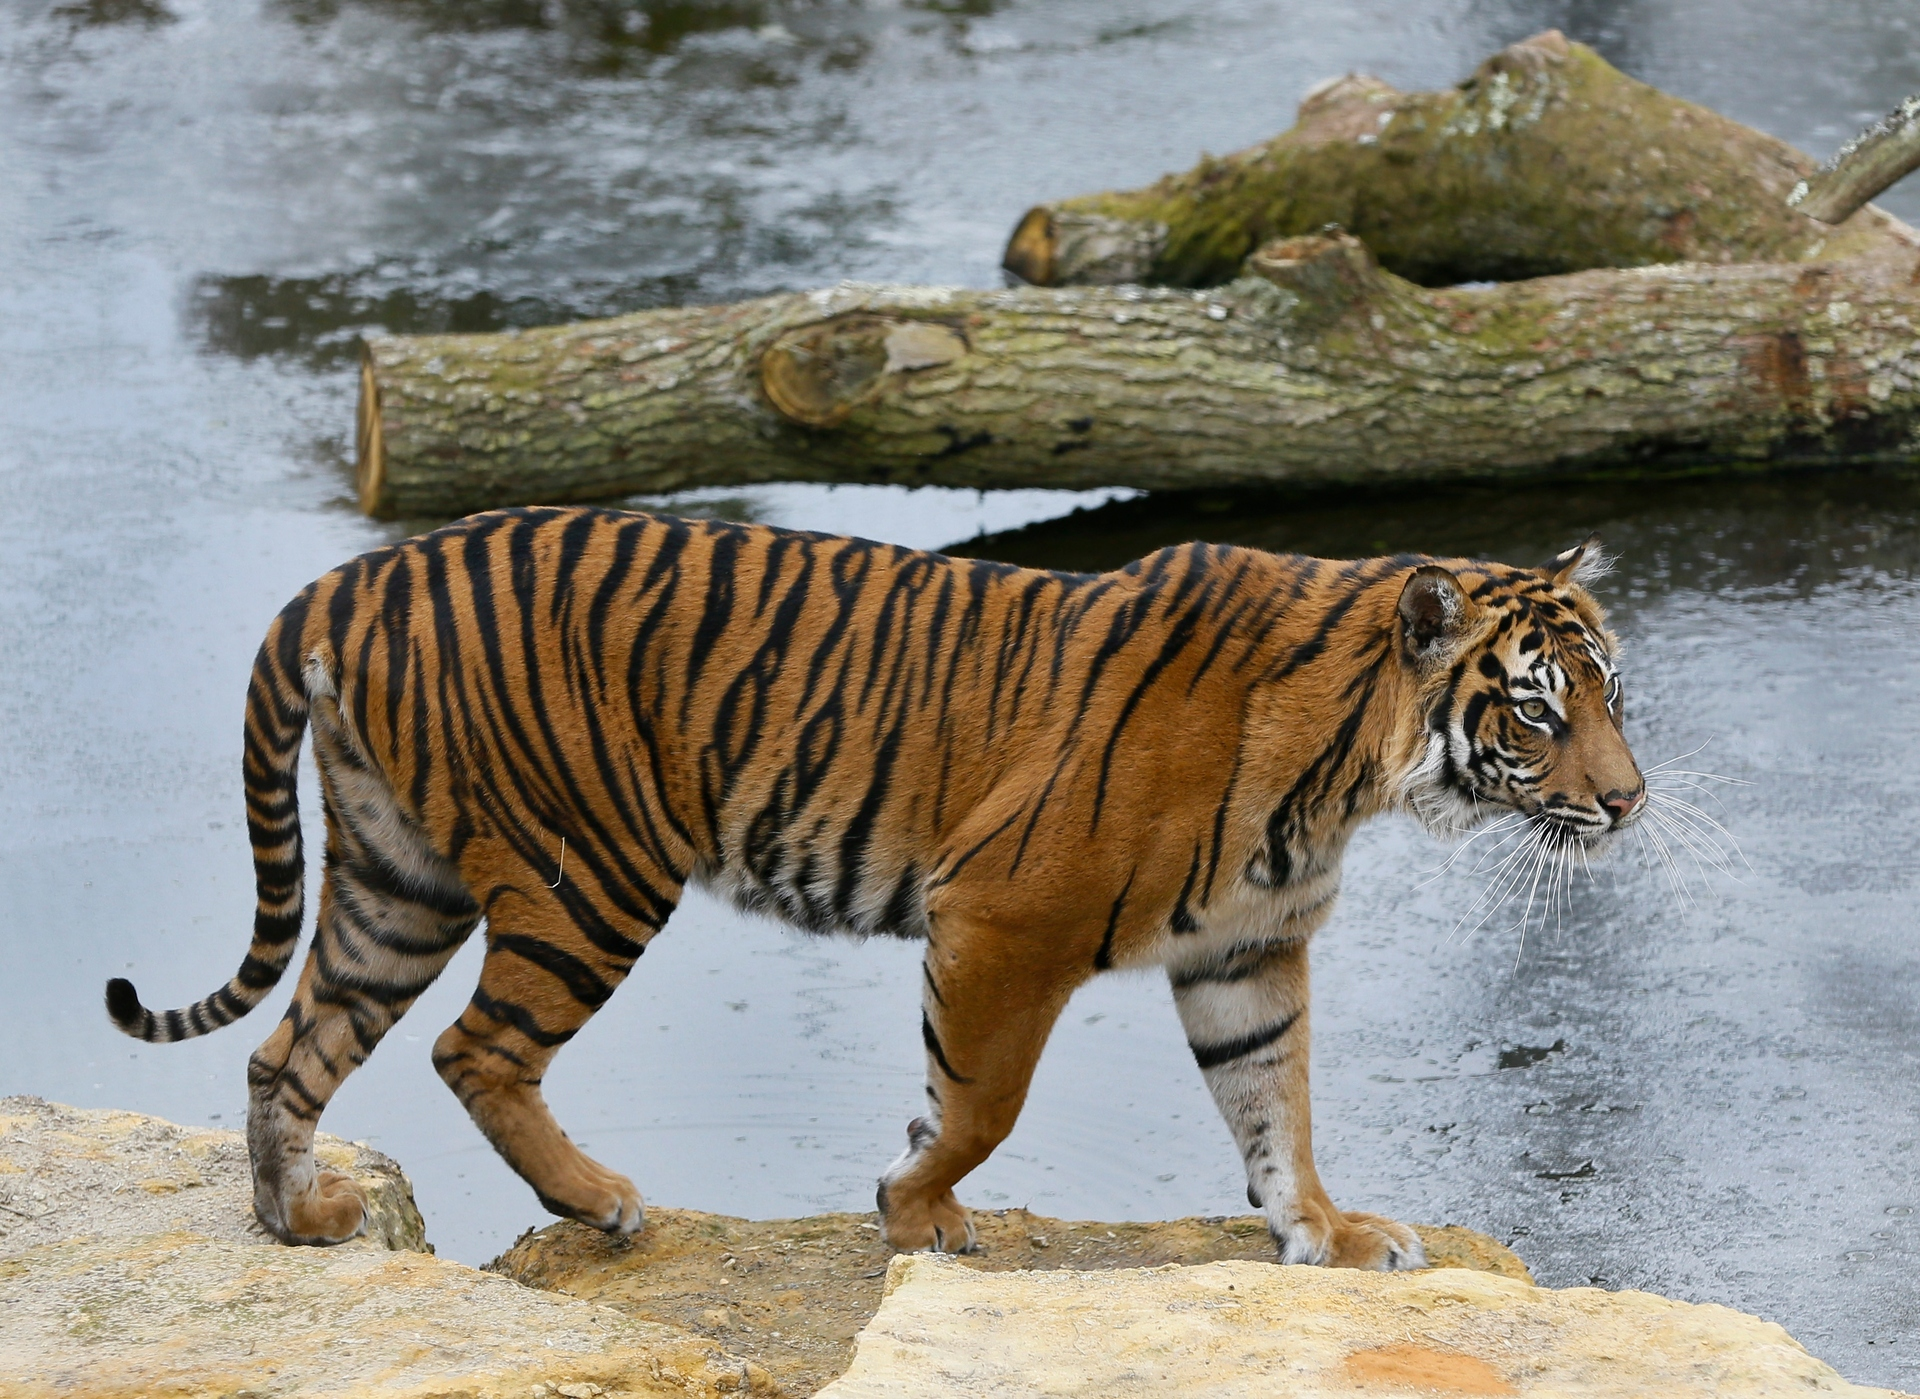 Zookeepers hoped rare tiger would breed with its 'perfect mate'. He killed her.